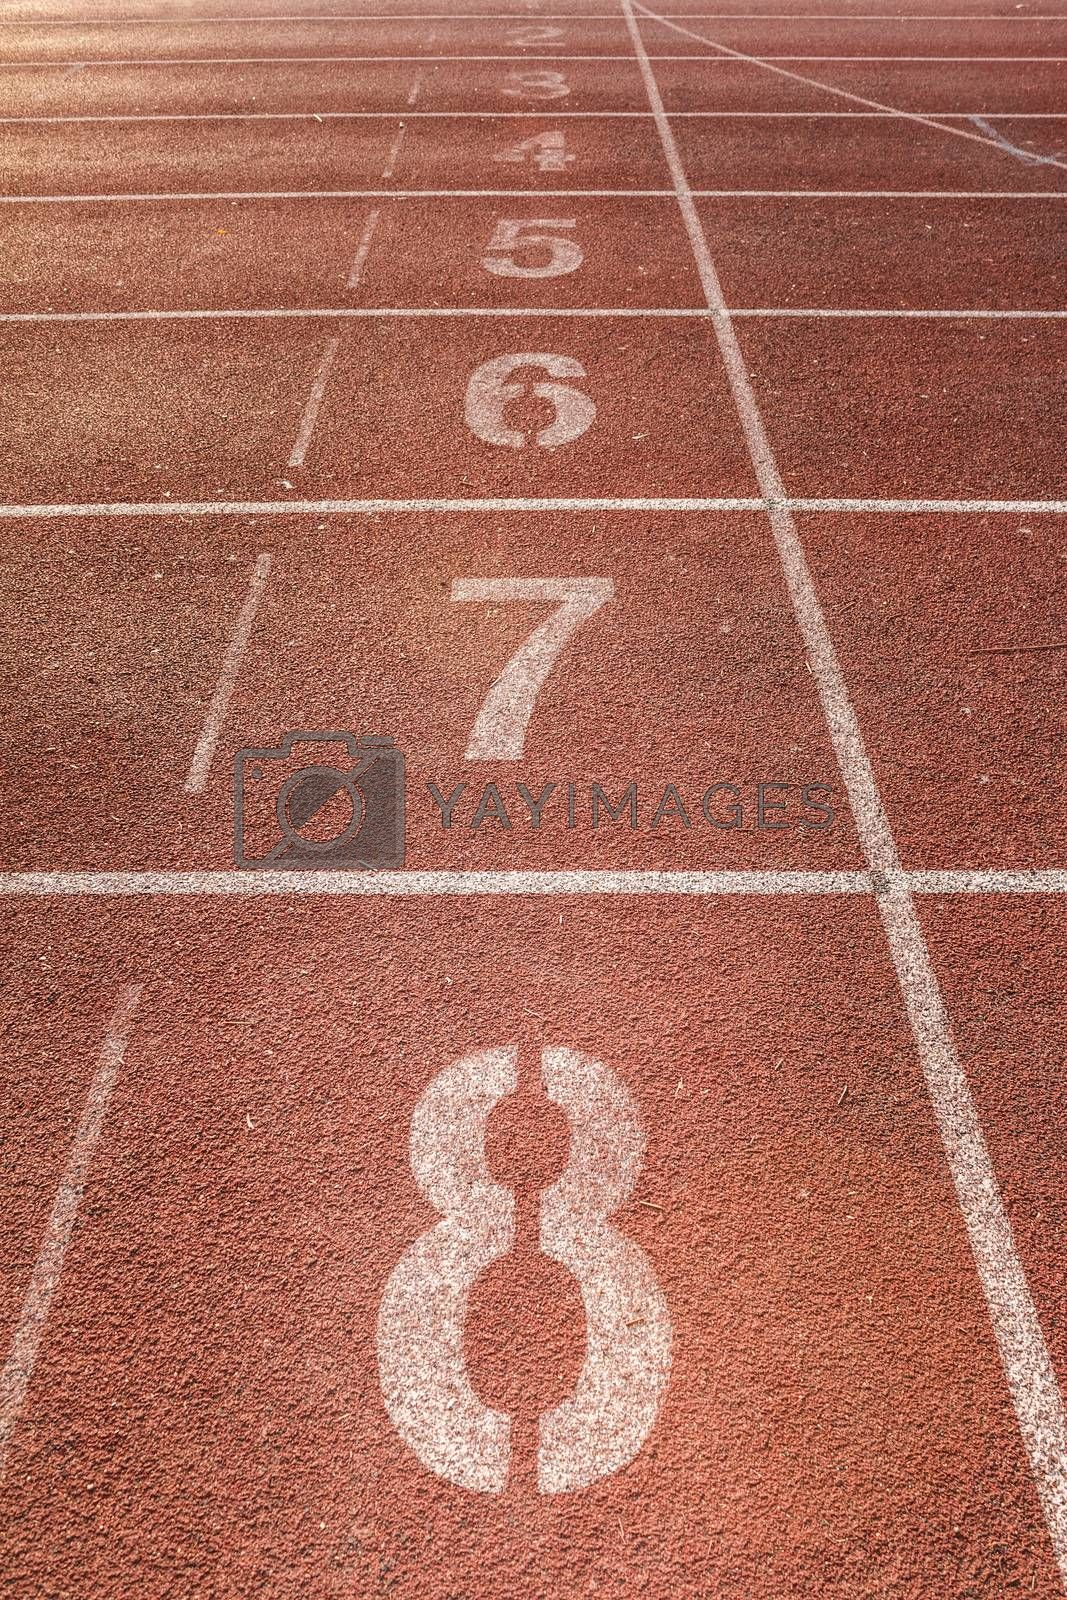 Royalty free image of number on running track by letoakin